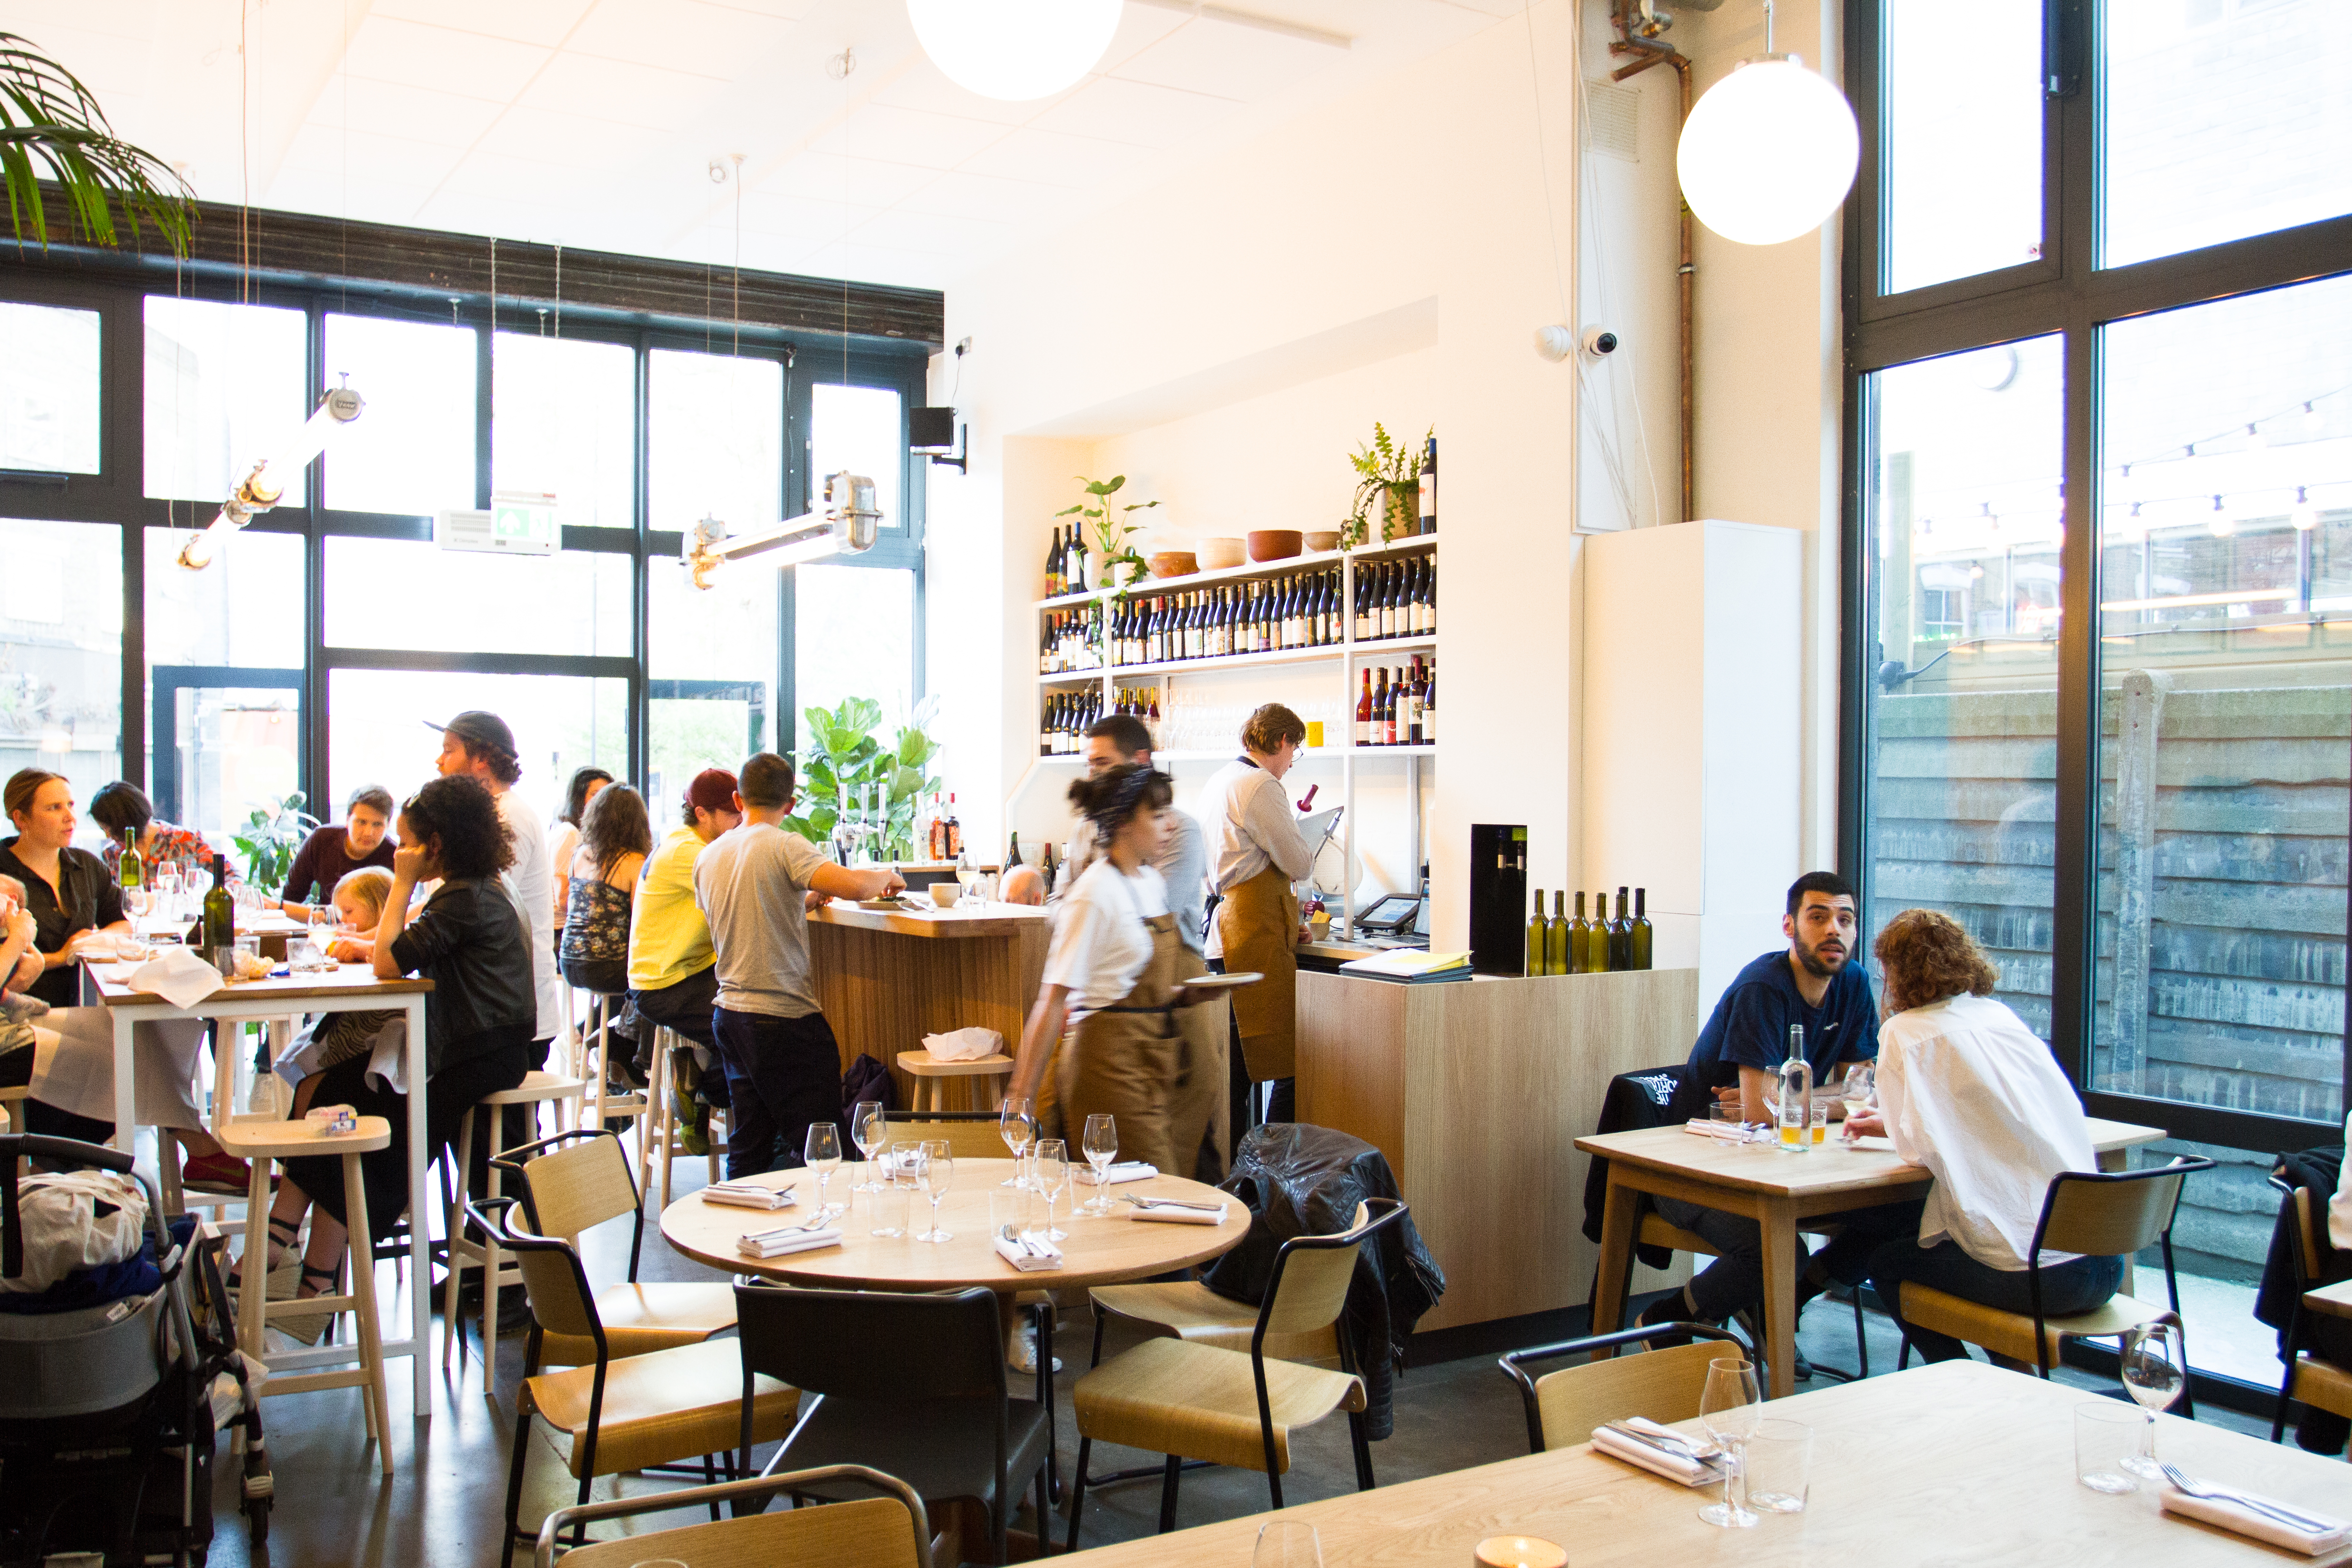 Bright restaurant by the team behind P. Franco and Peg in Hackney is one of the best restaurants in London, spring 2019